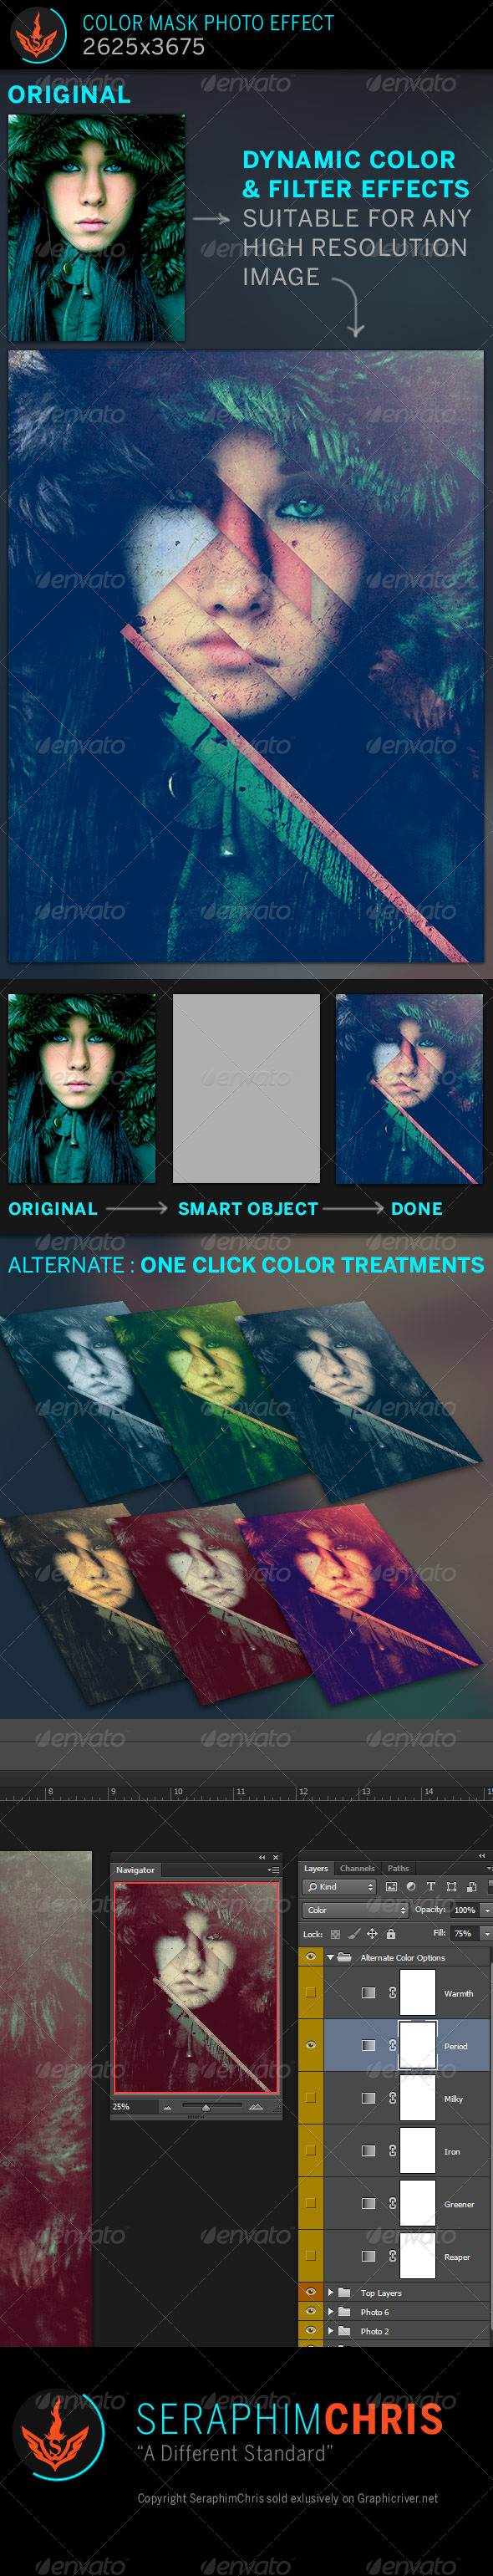 Color Mask Photo Effect Template